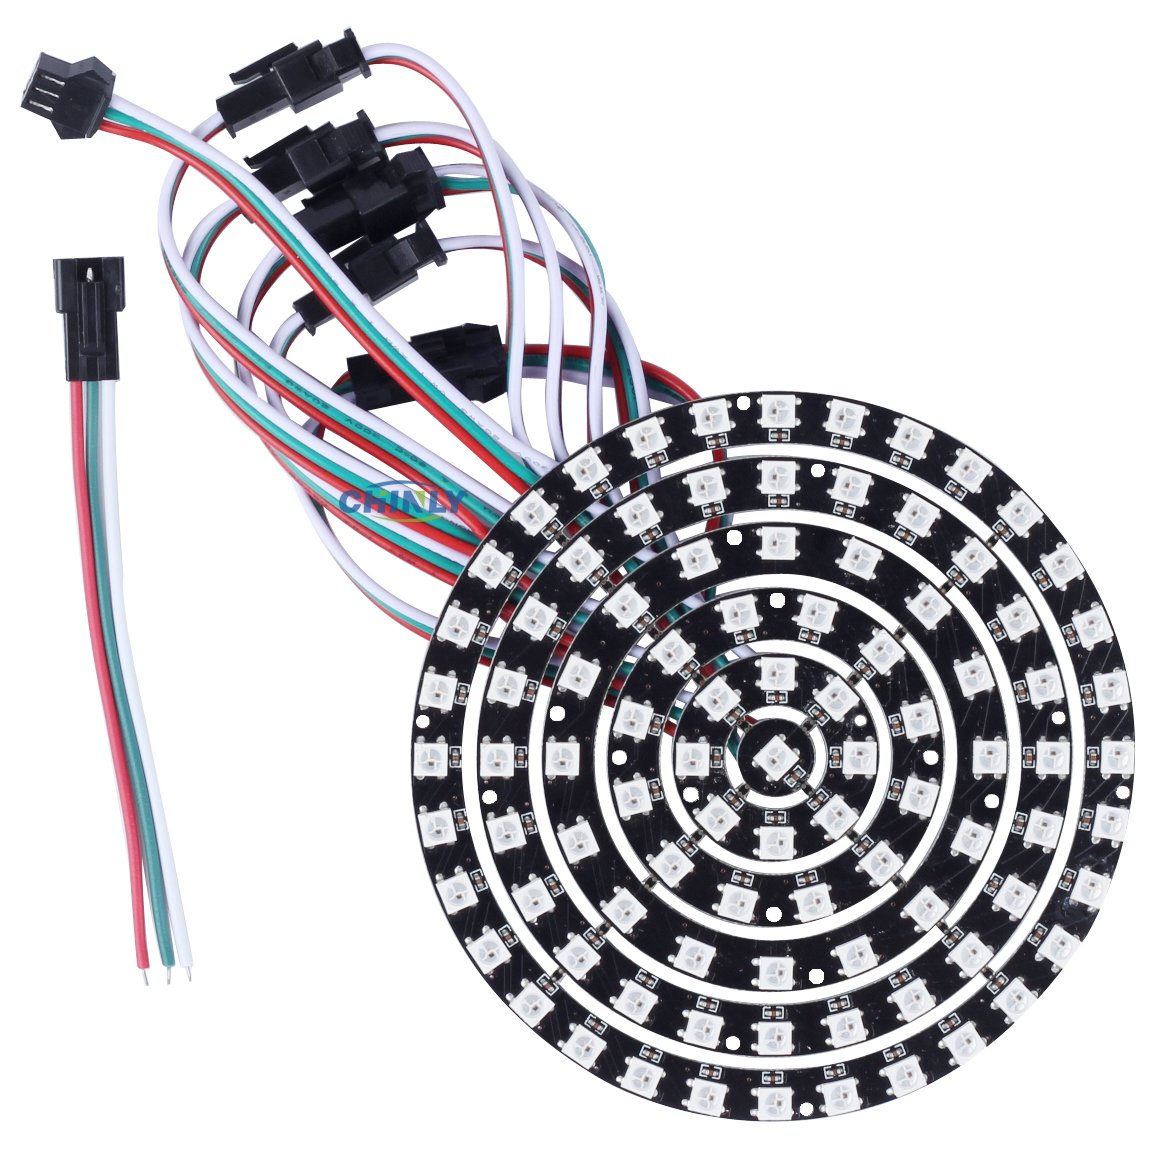 Cheap 5050 Led Ws2812b, find 5050 Led Ws2812b deals on line at ...